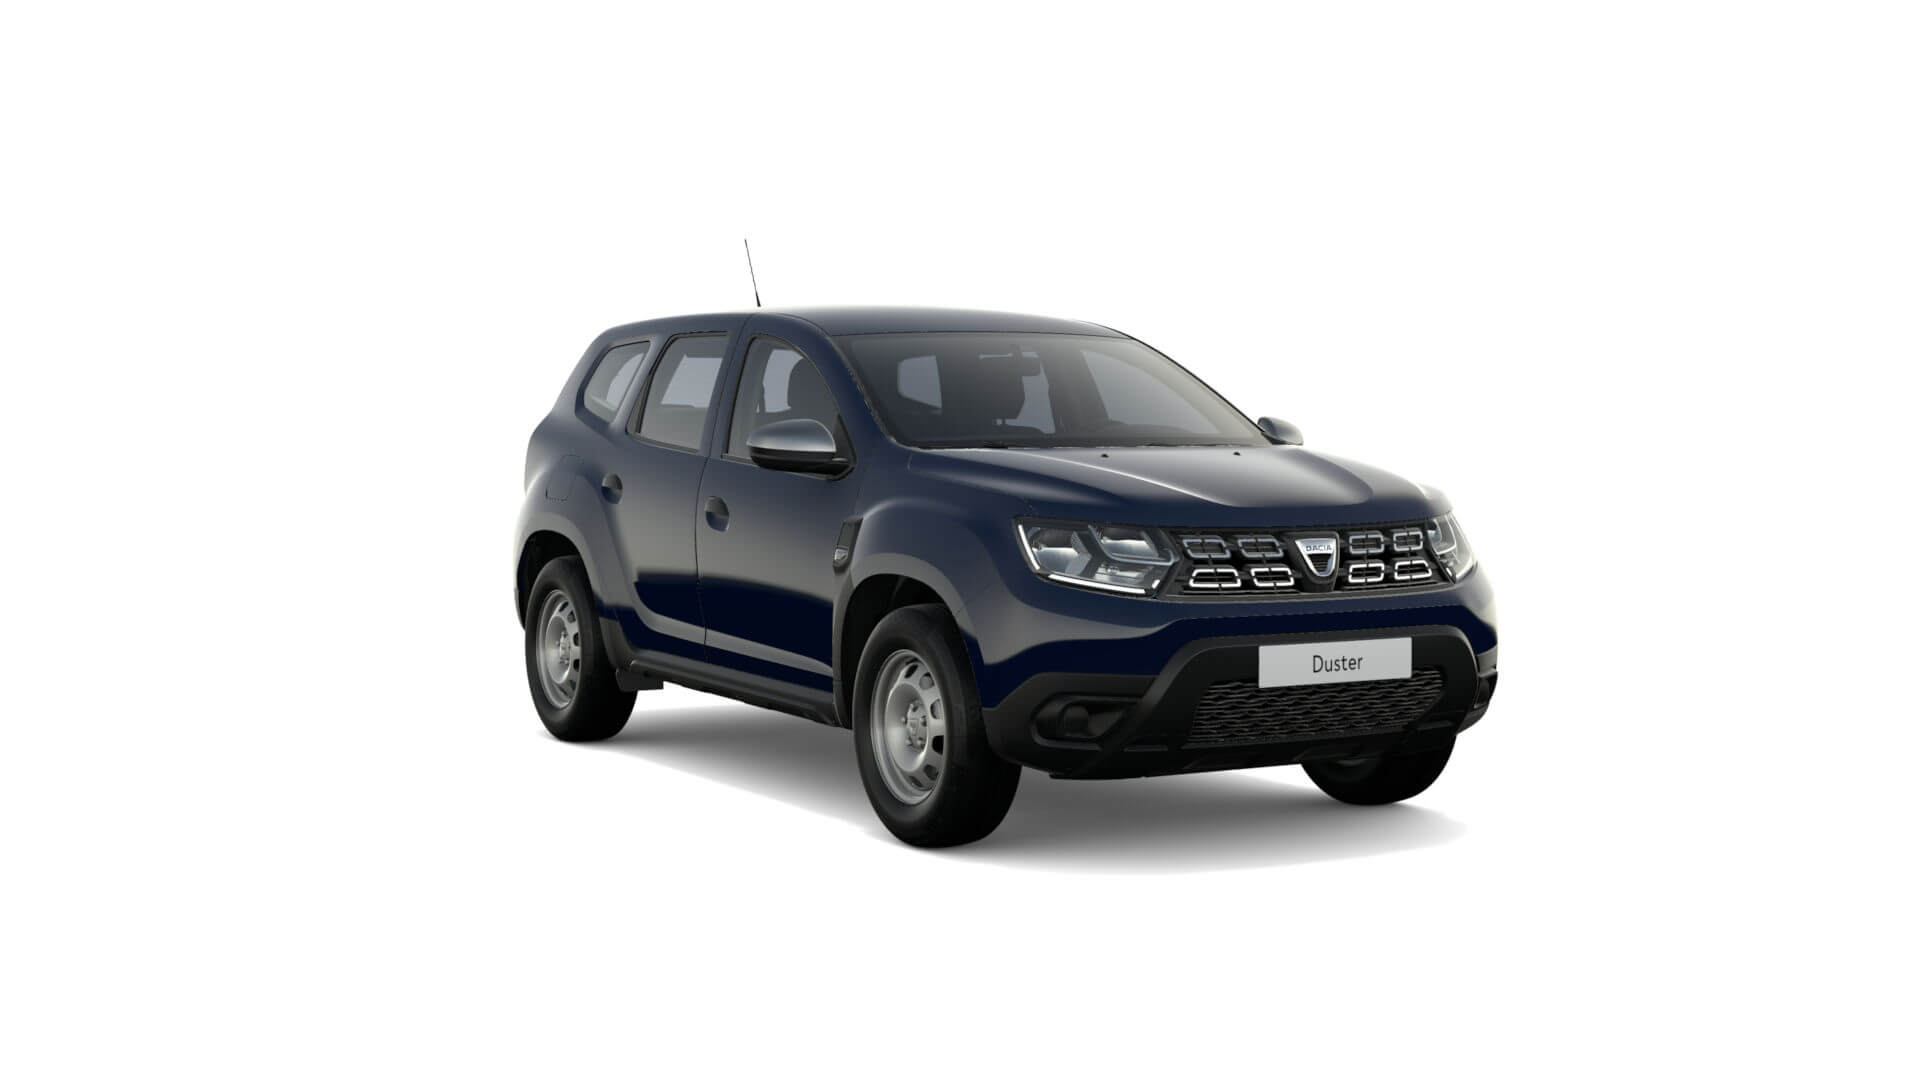 Automodell blau - Dacia Duster NFZ - Renault Ahrens Hannover